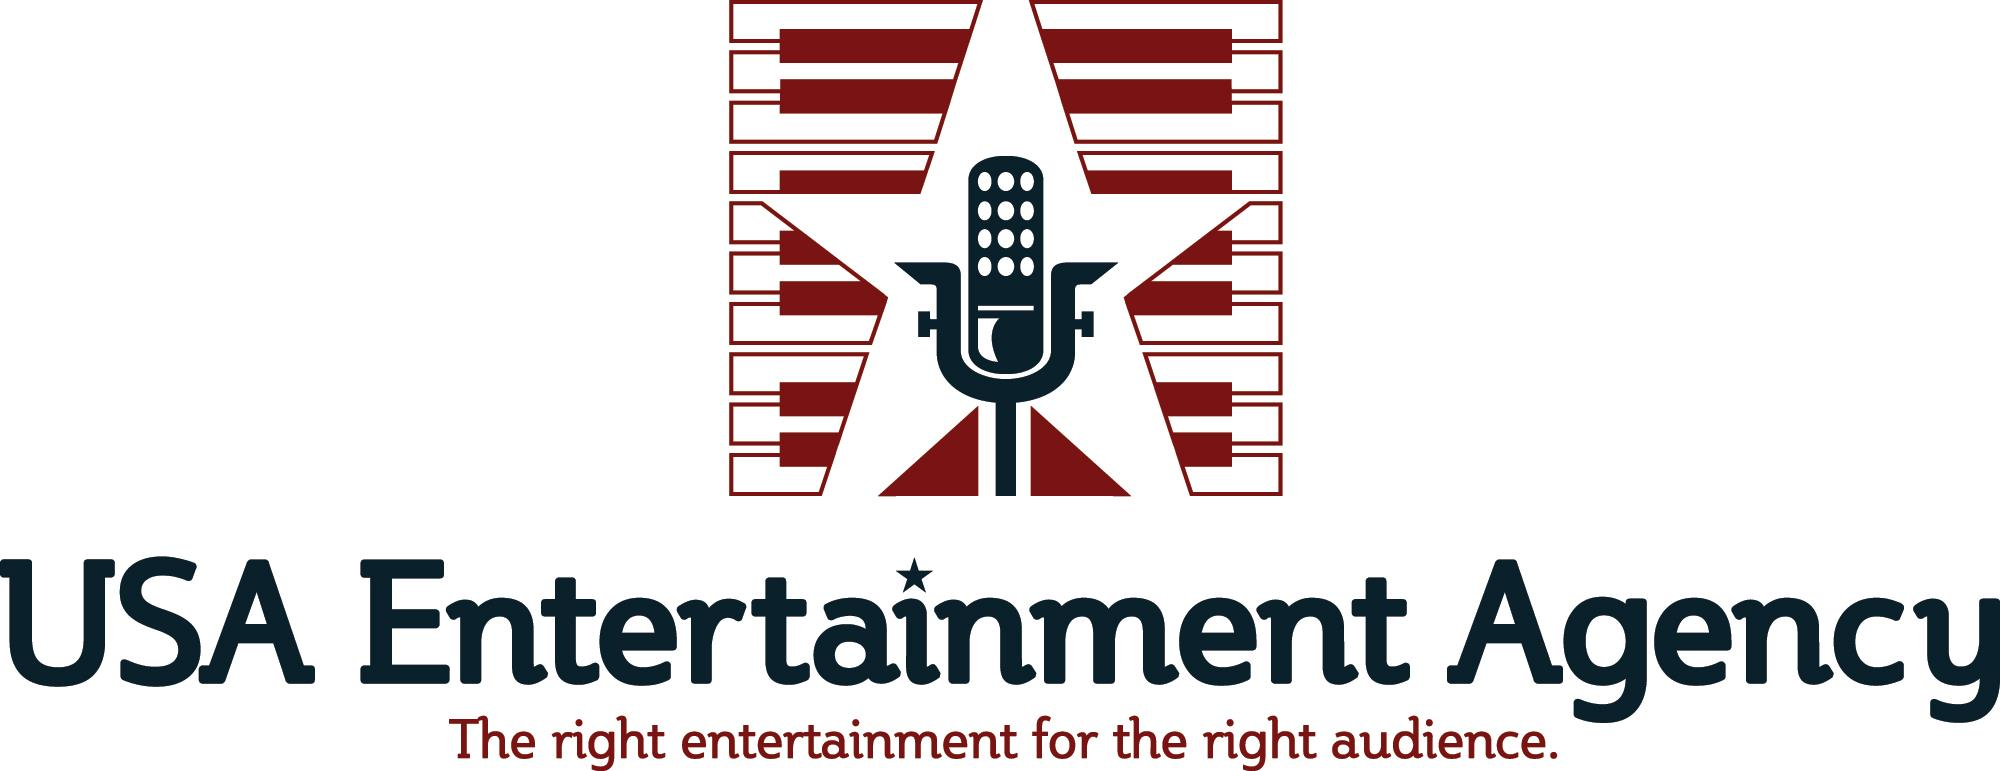 Usa Entertainment